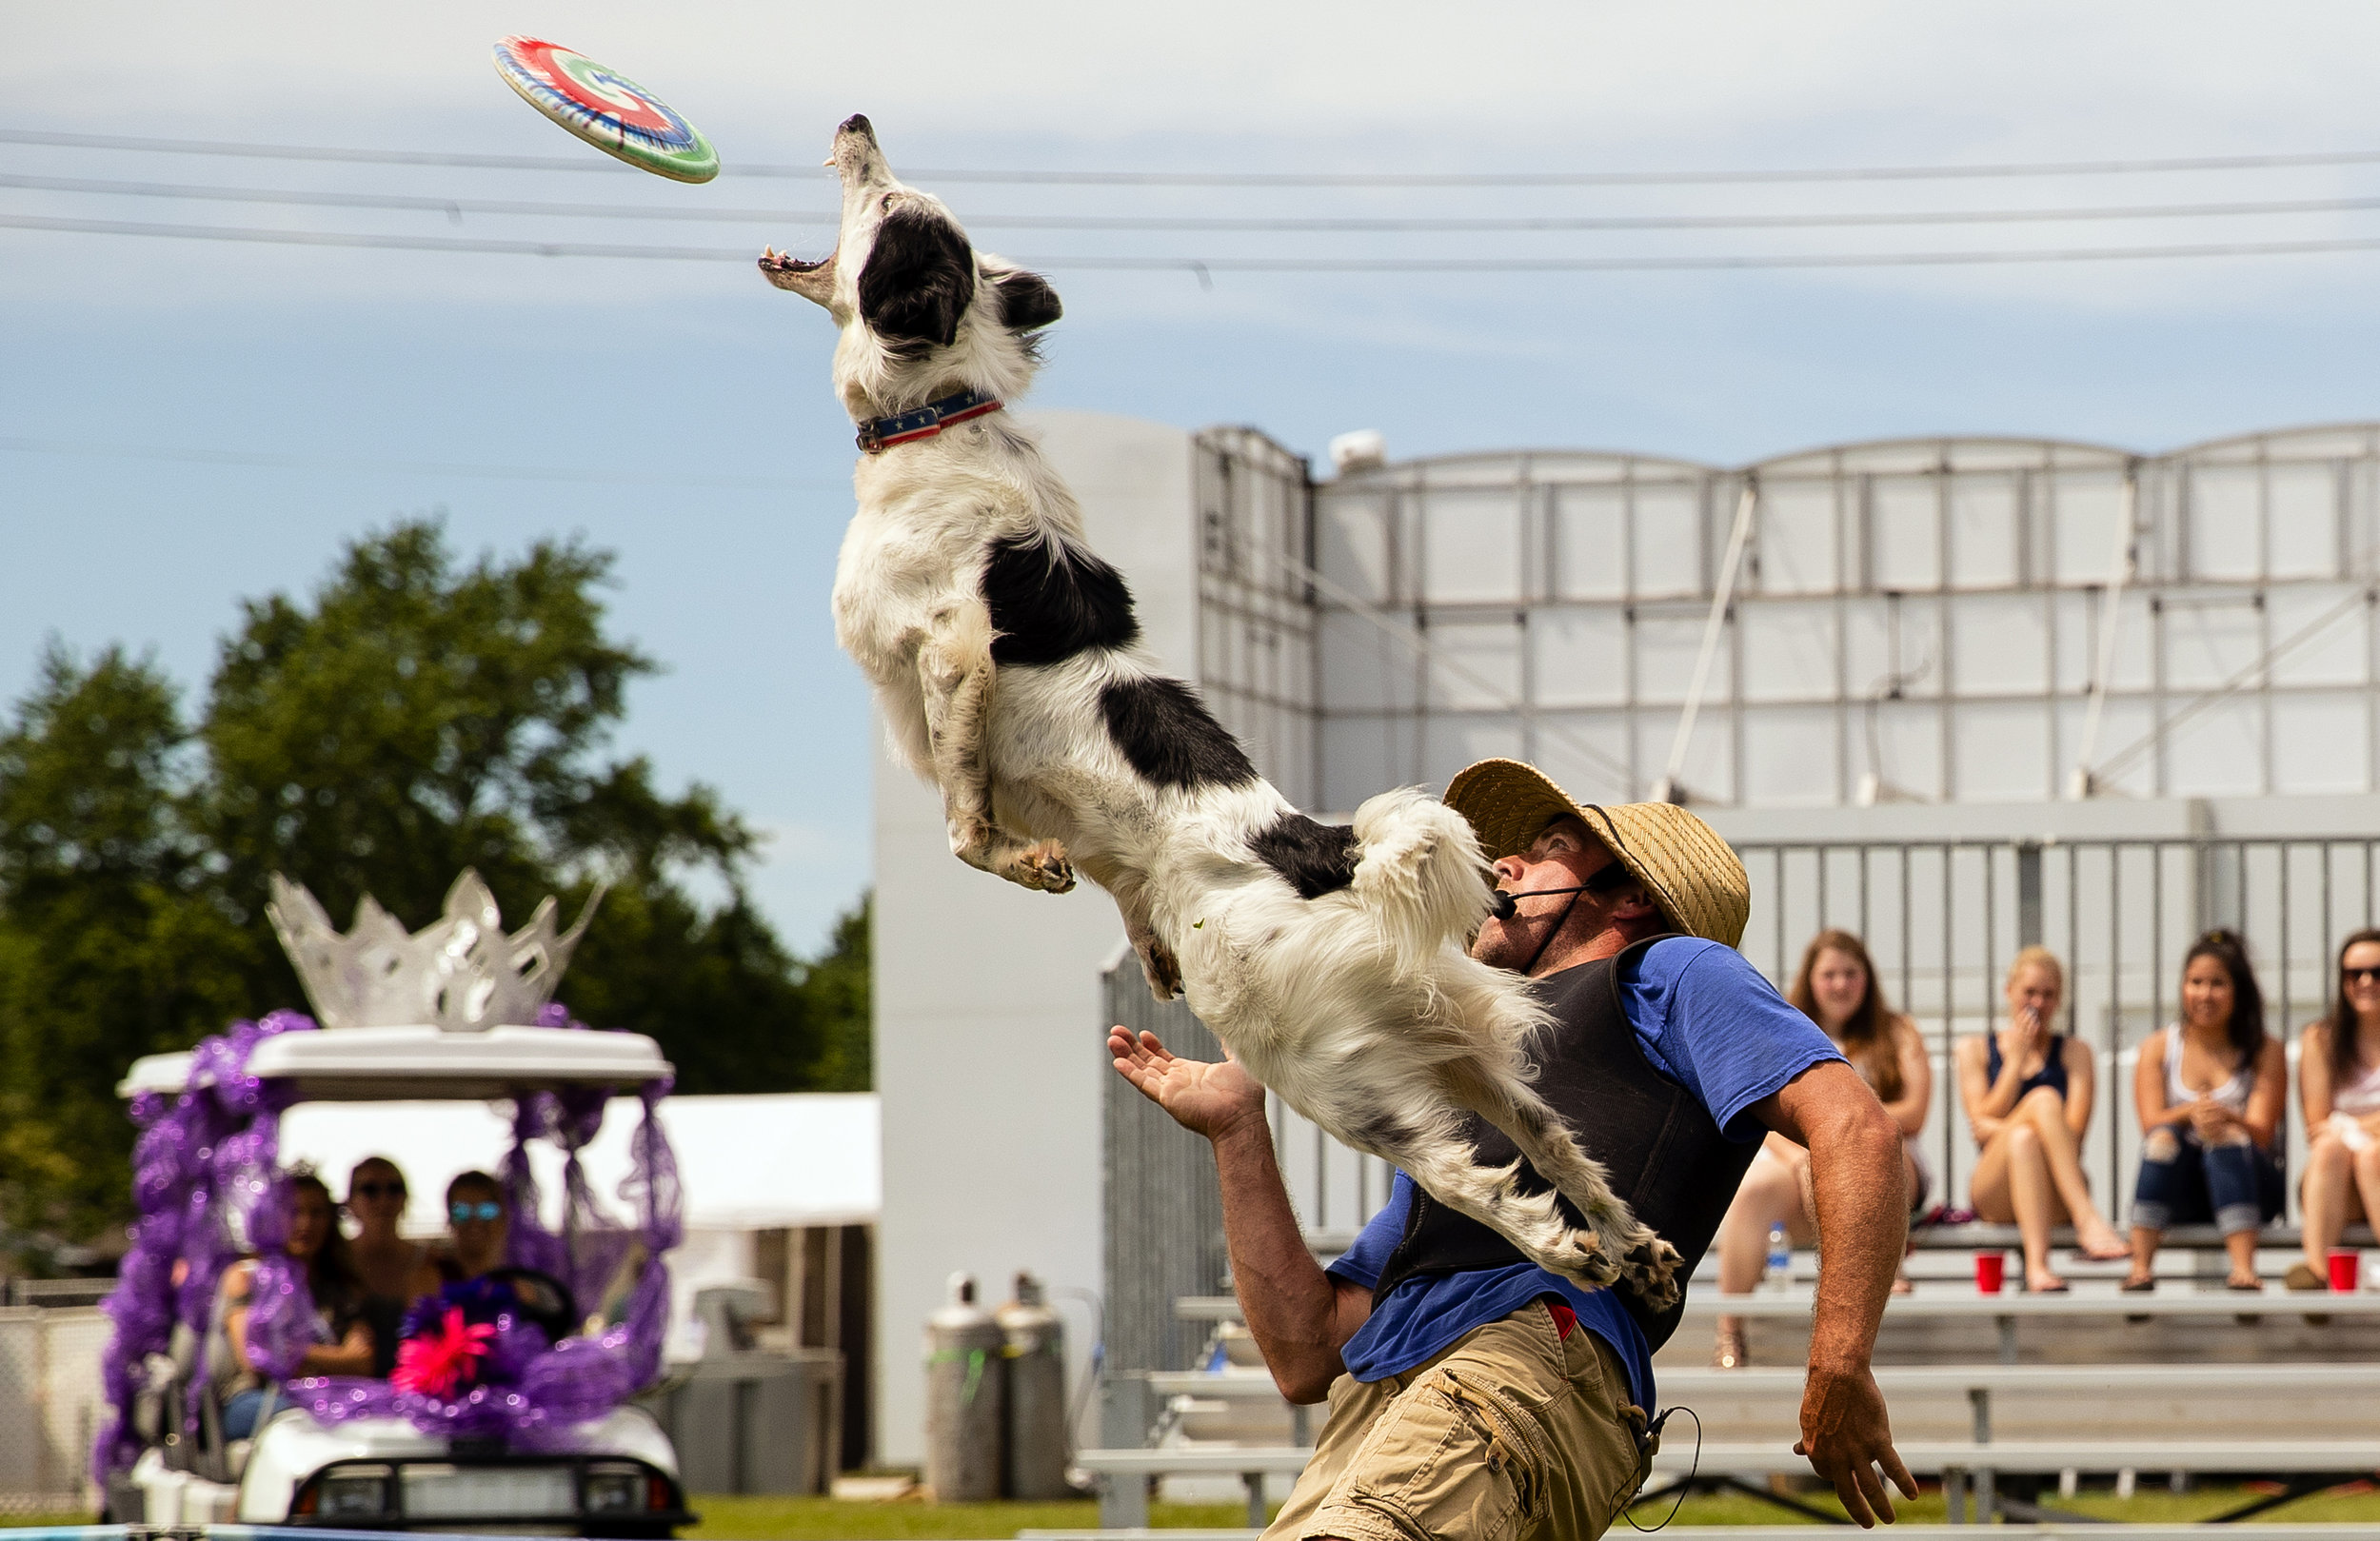 Matrix, a five-year-old border collie, takes a flying leap off Jonathan Offi to snatch a flying disc during the Canines in the Clouds afternoon performance at the Sangamon County Fair Wednesday, June 13, 2018. The event, a sport, stunt and trick dog show, features rescue dogs and encourages people to donate, rescue, foster,  transport, volunteer, and or adopt a dog that matches your lifestyle. [Ted Schurter/The State Journal-Register]